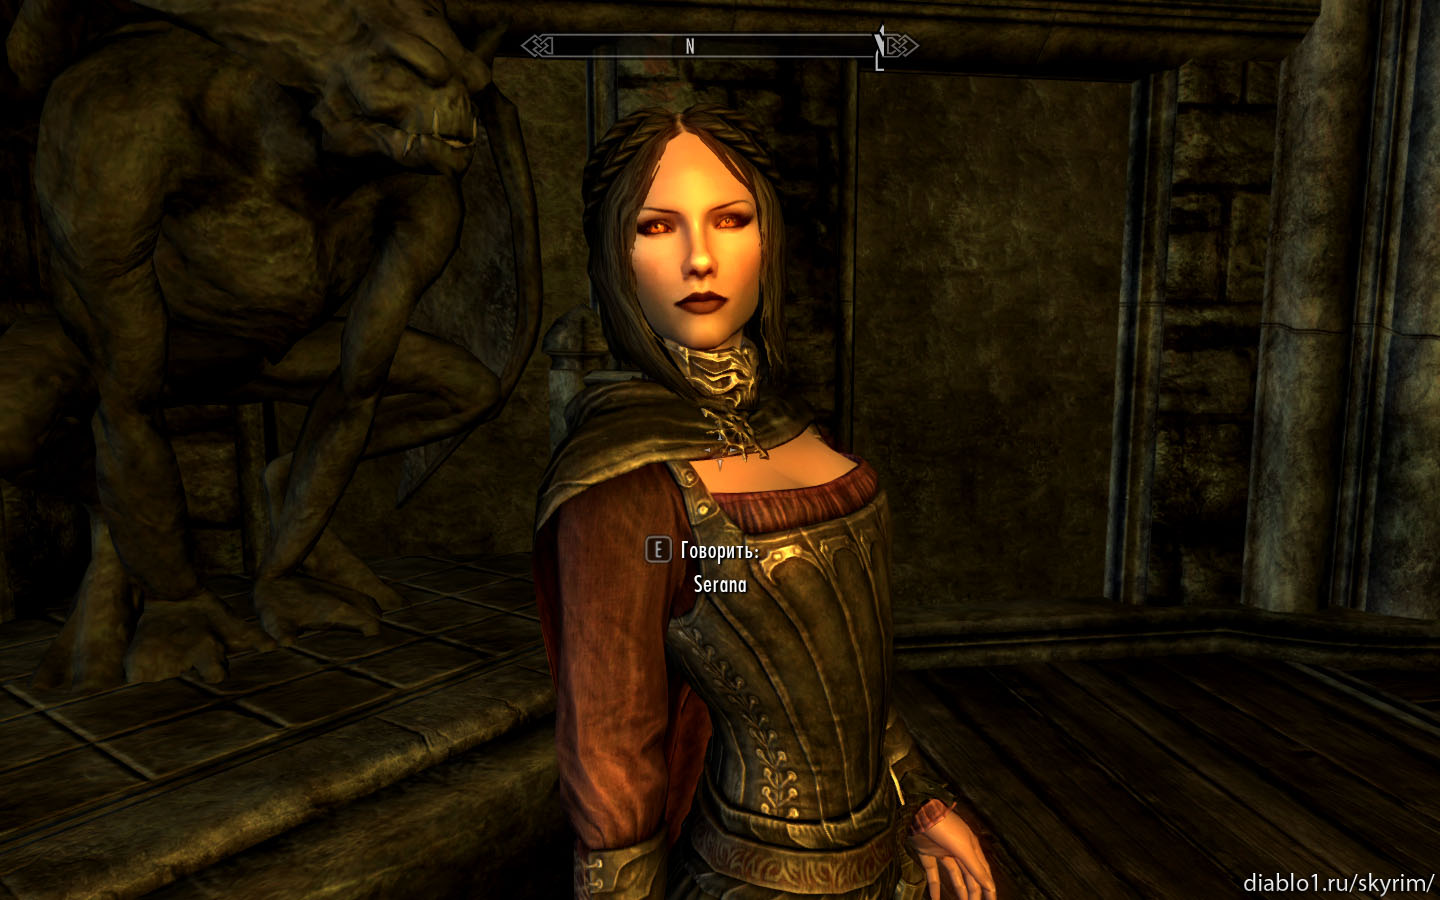 Skyrim serana revised